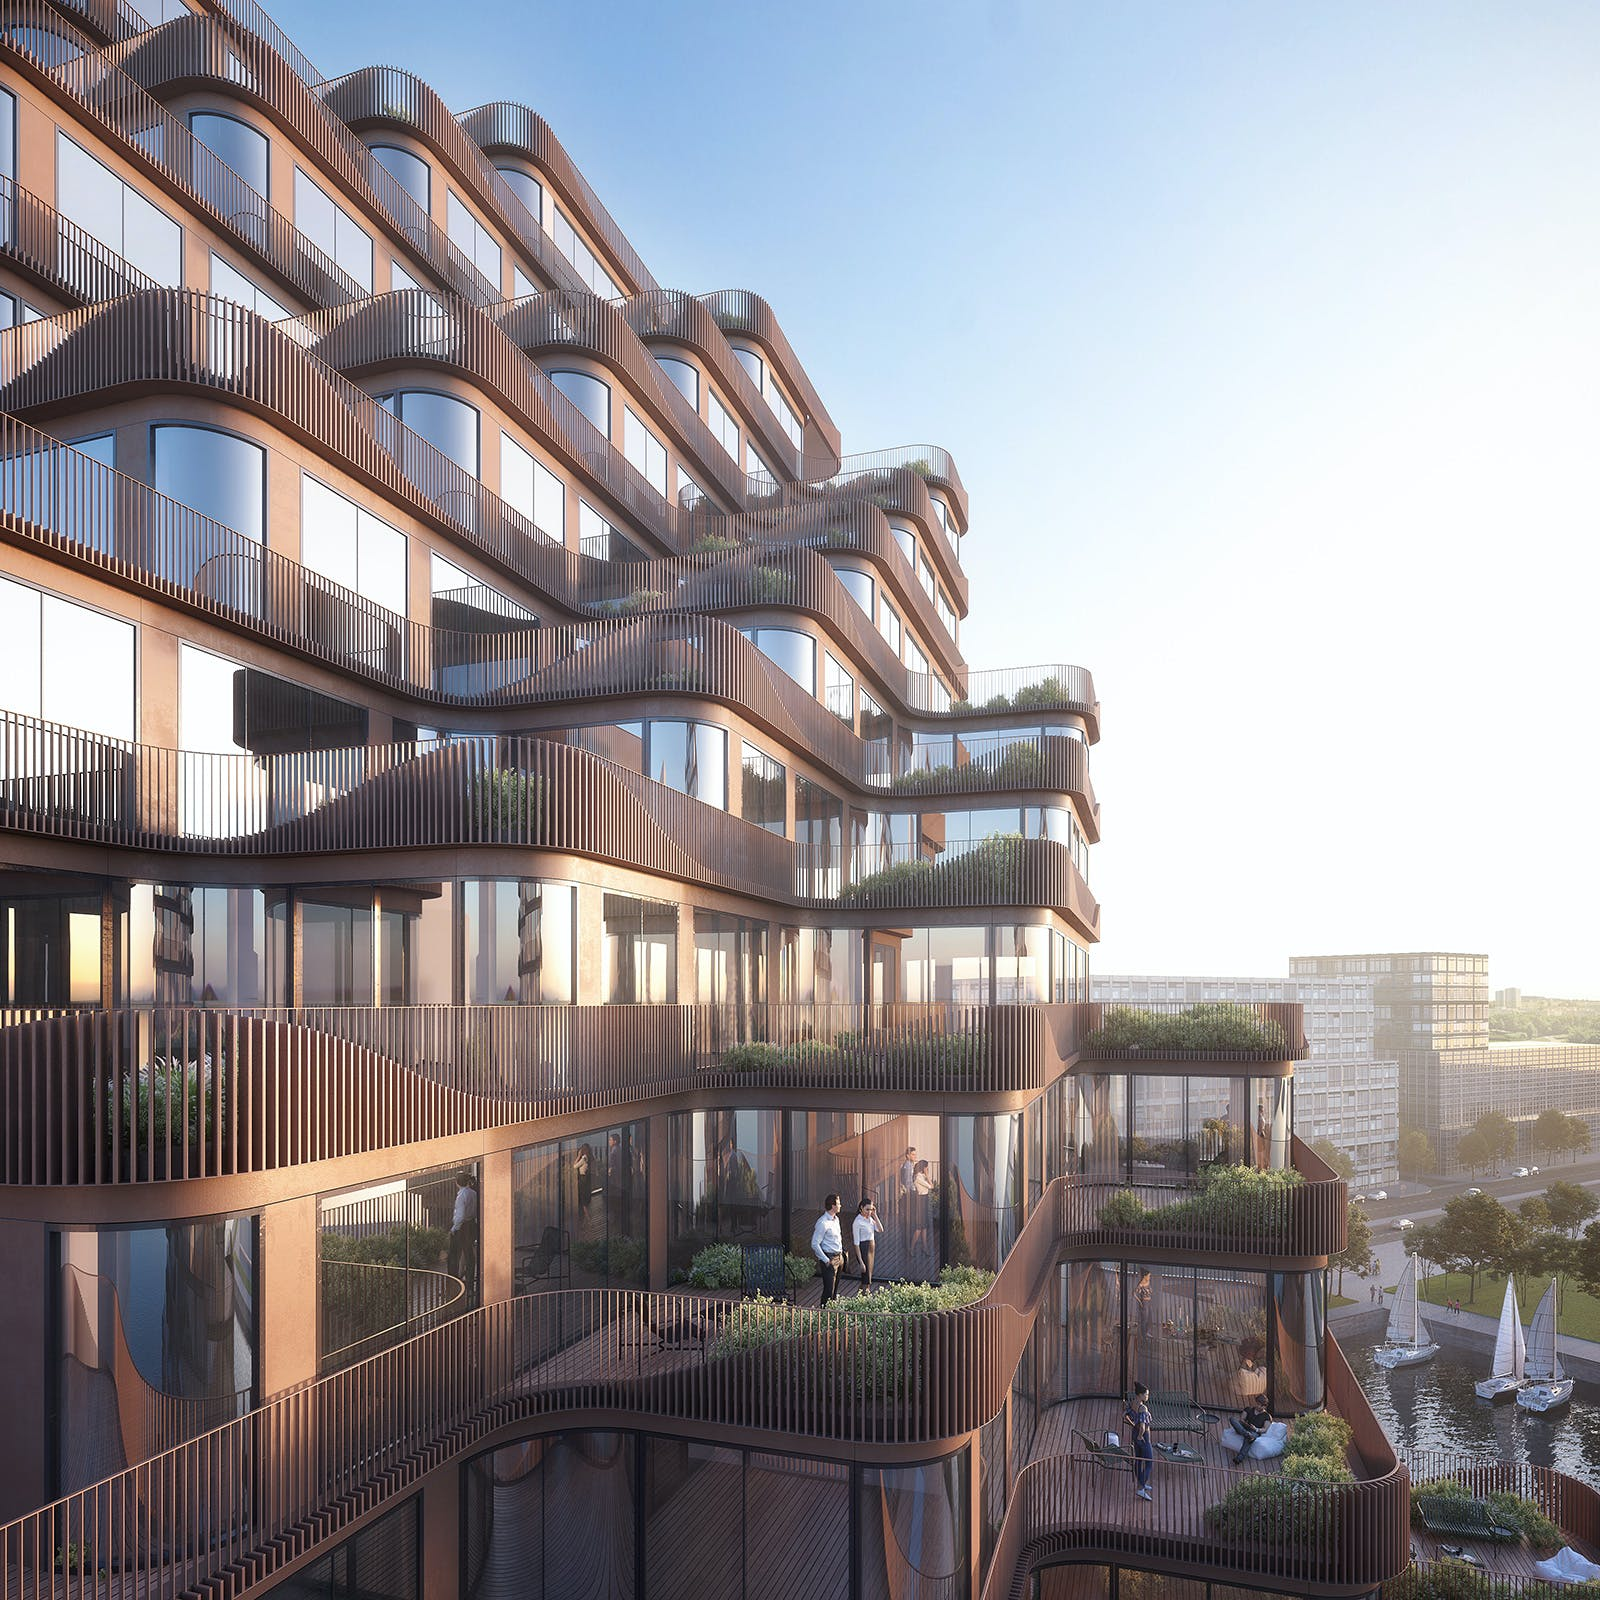 3xn S Winning Design For Toronto Waterfront Condos Honors